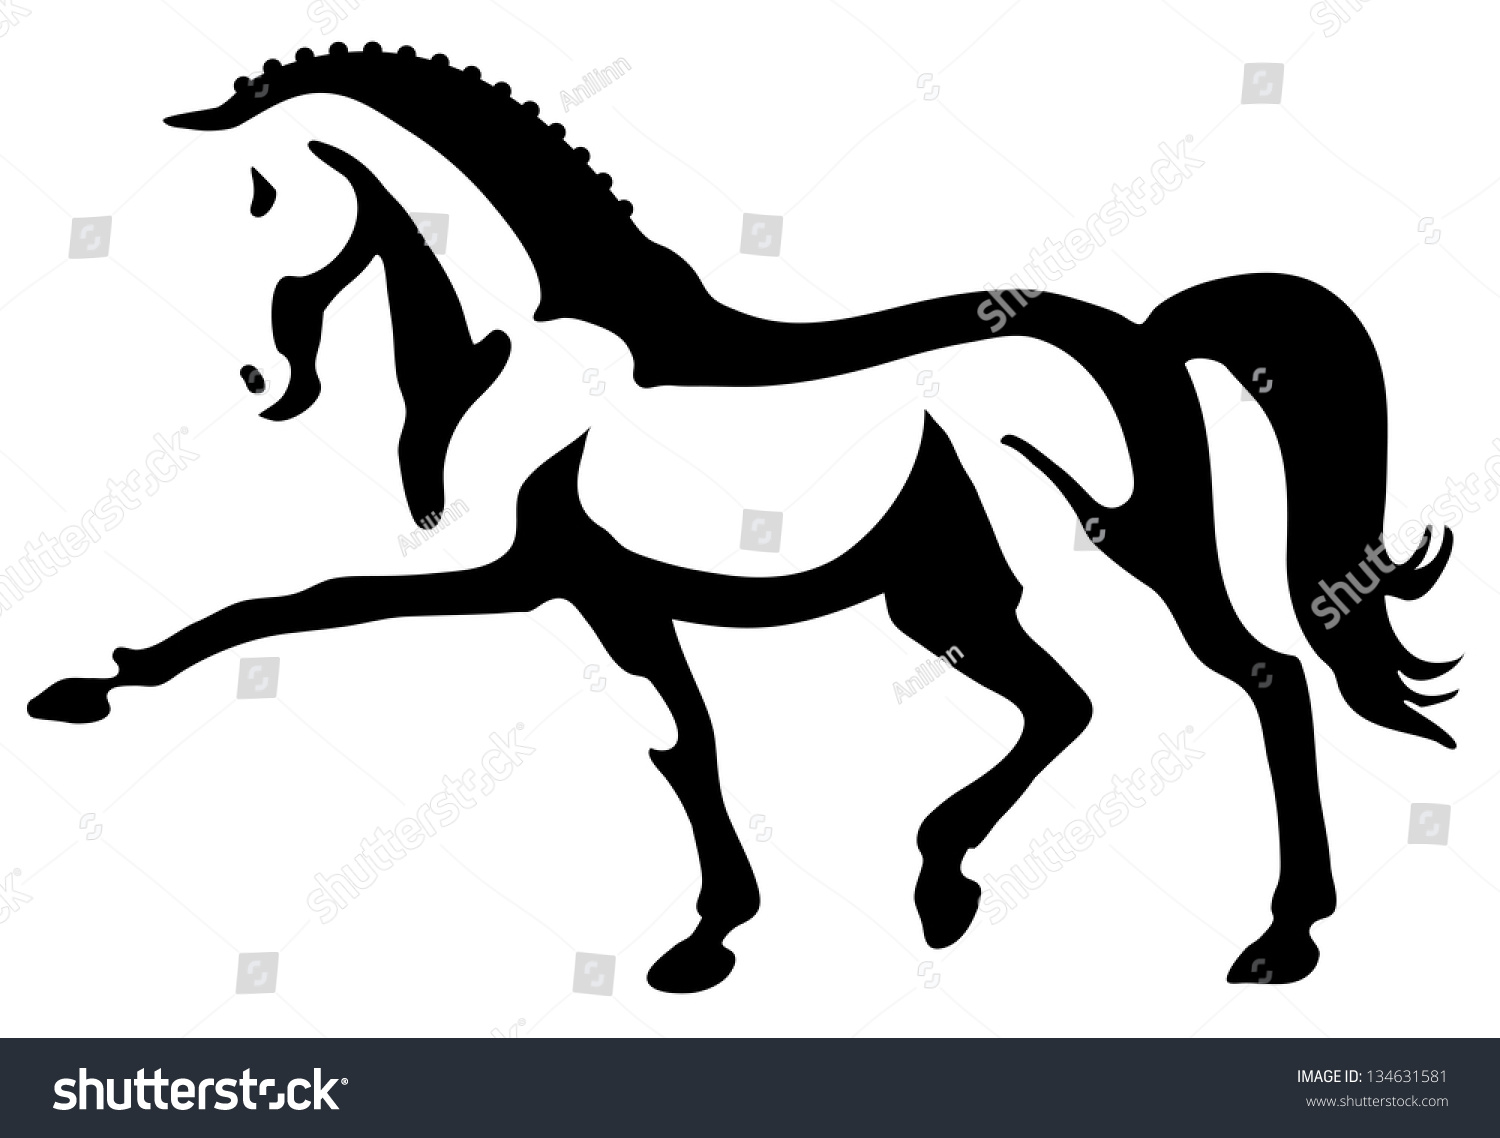 clip art dressage horse - photo #25